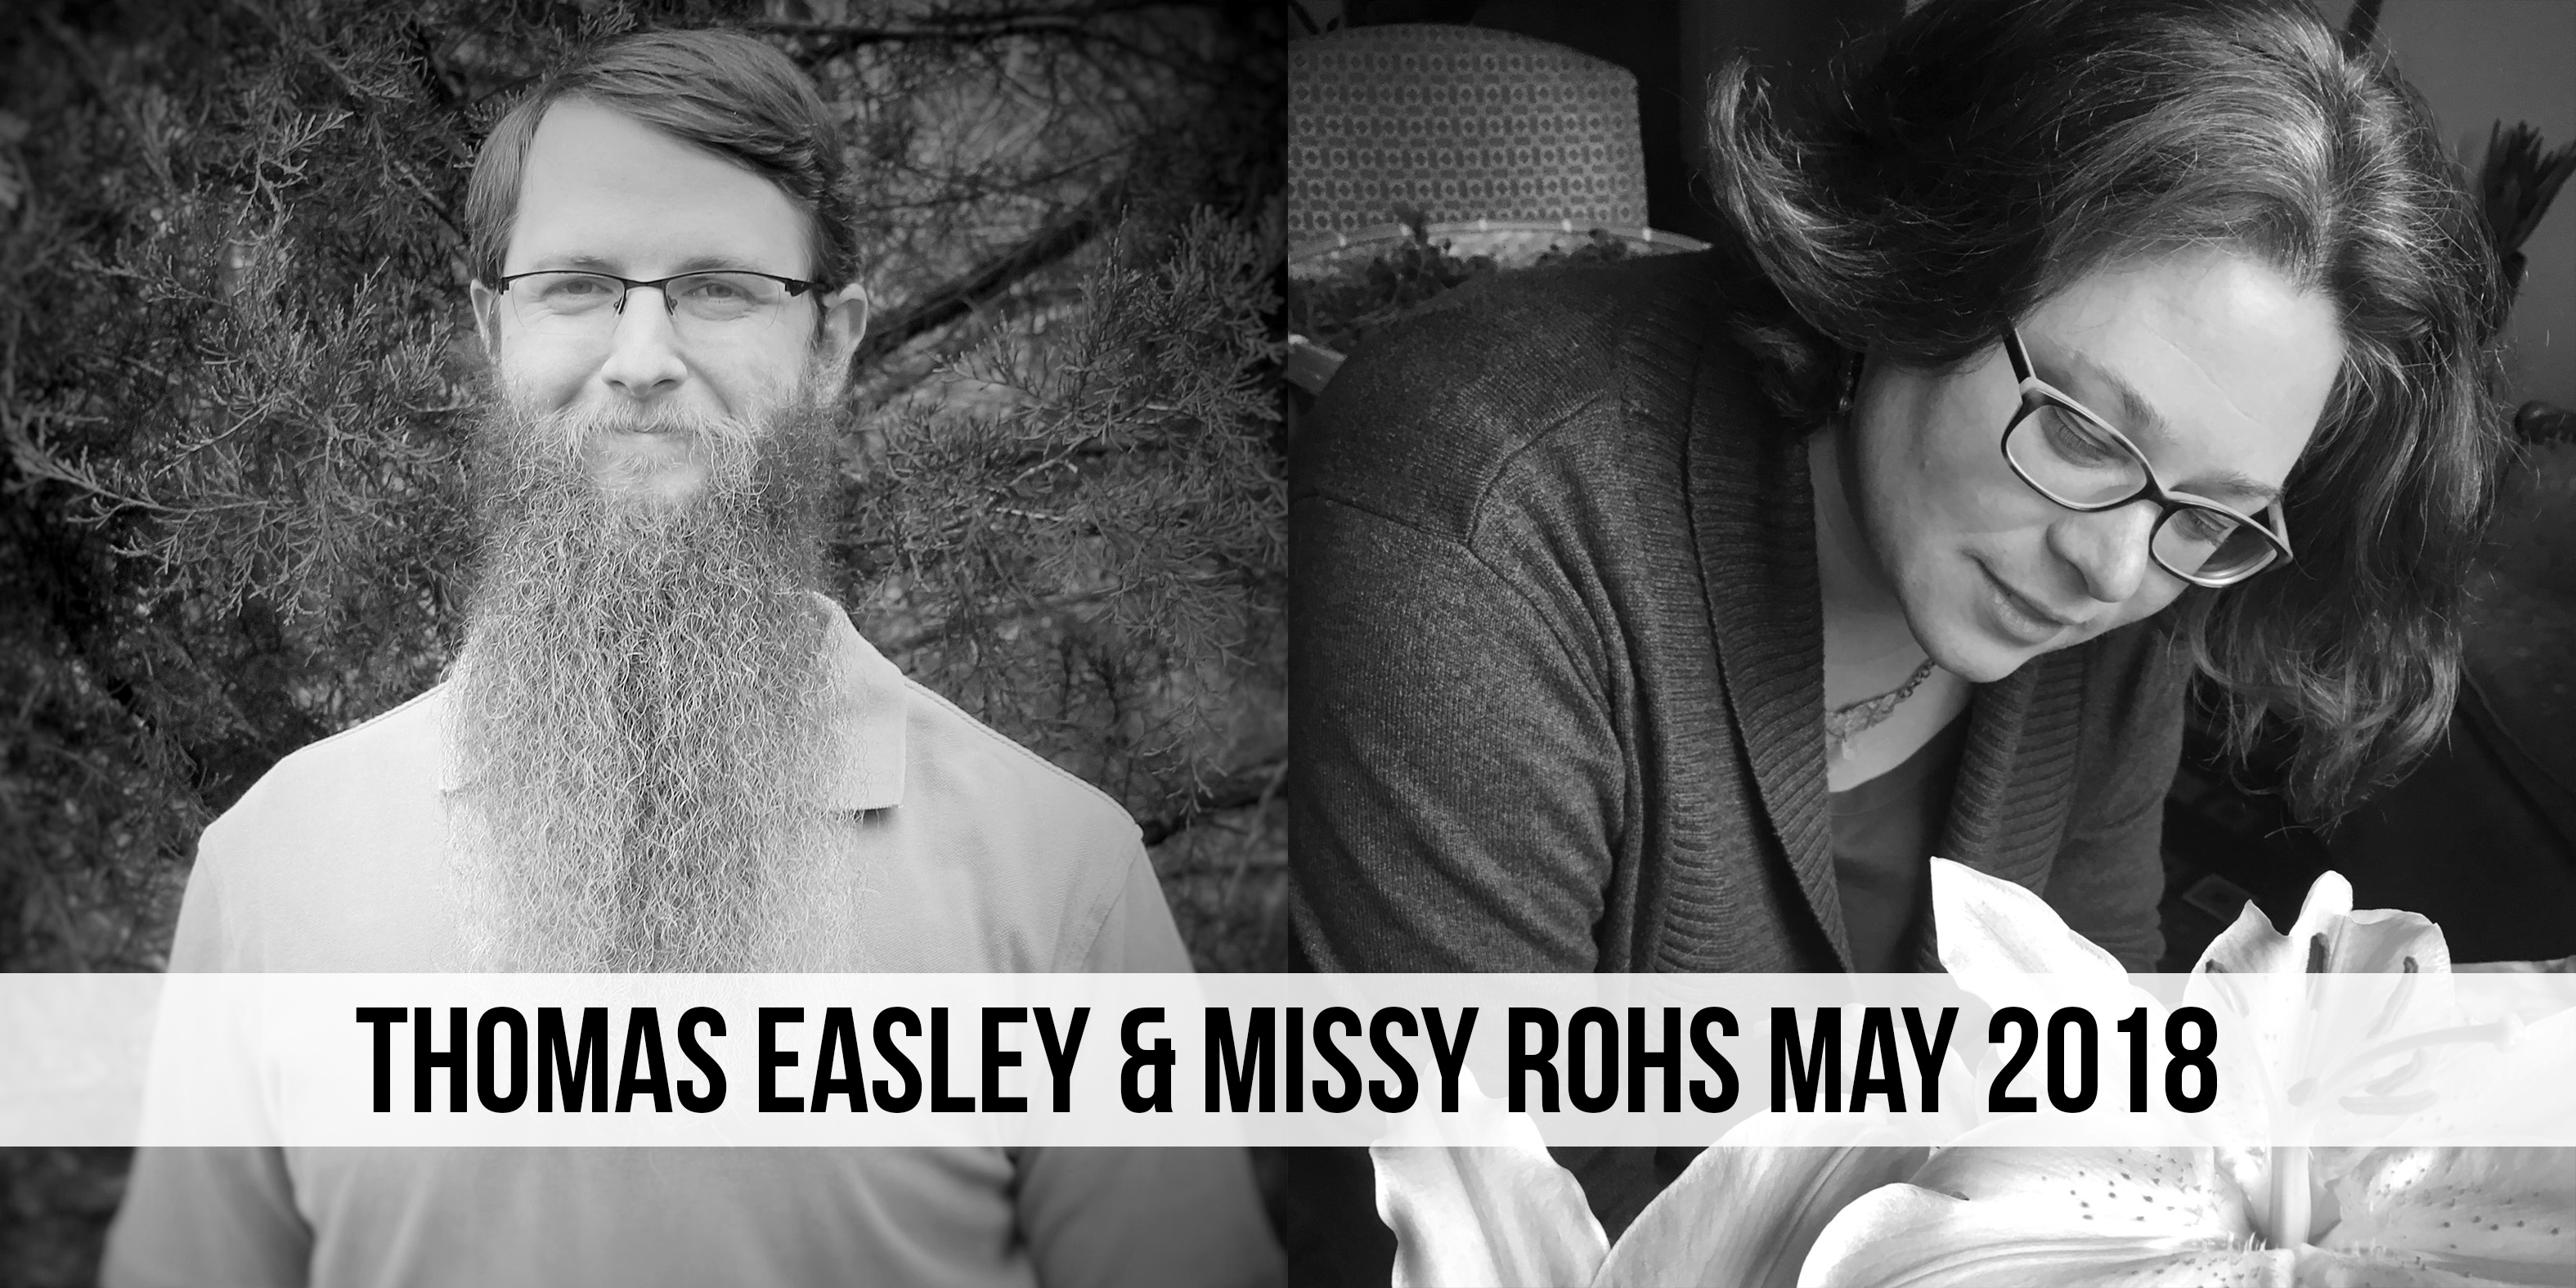 Thomas Easley and Missy Rohs